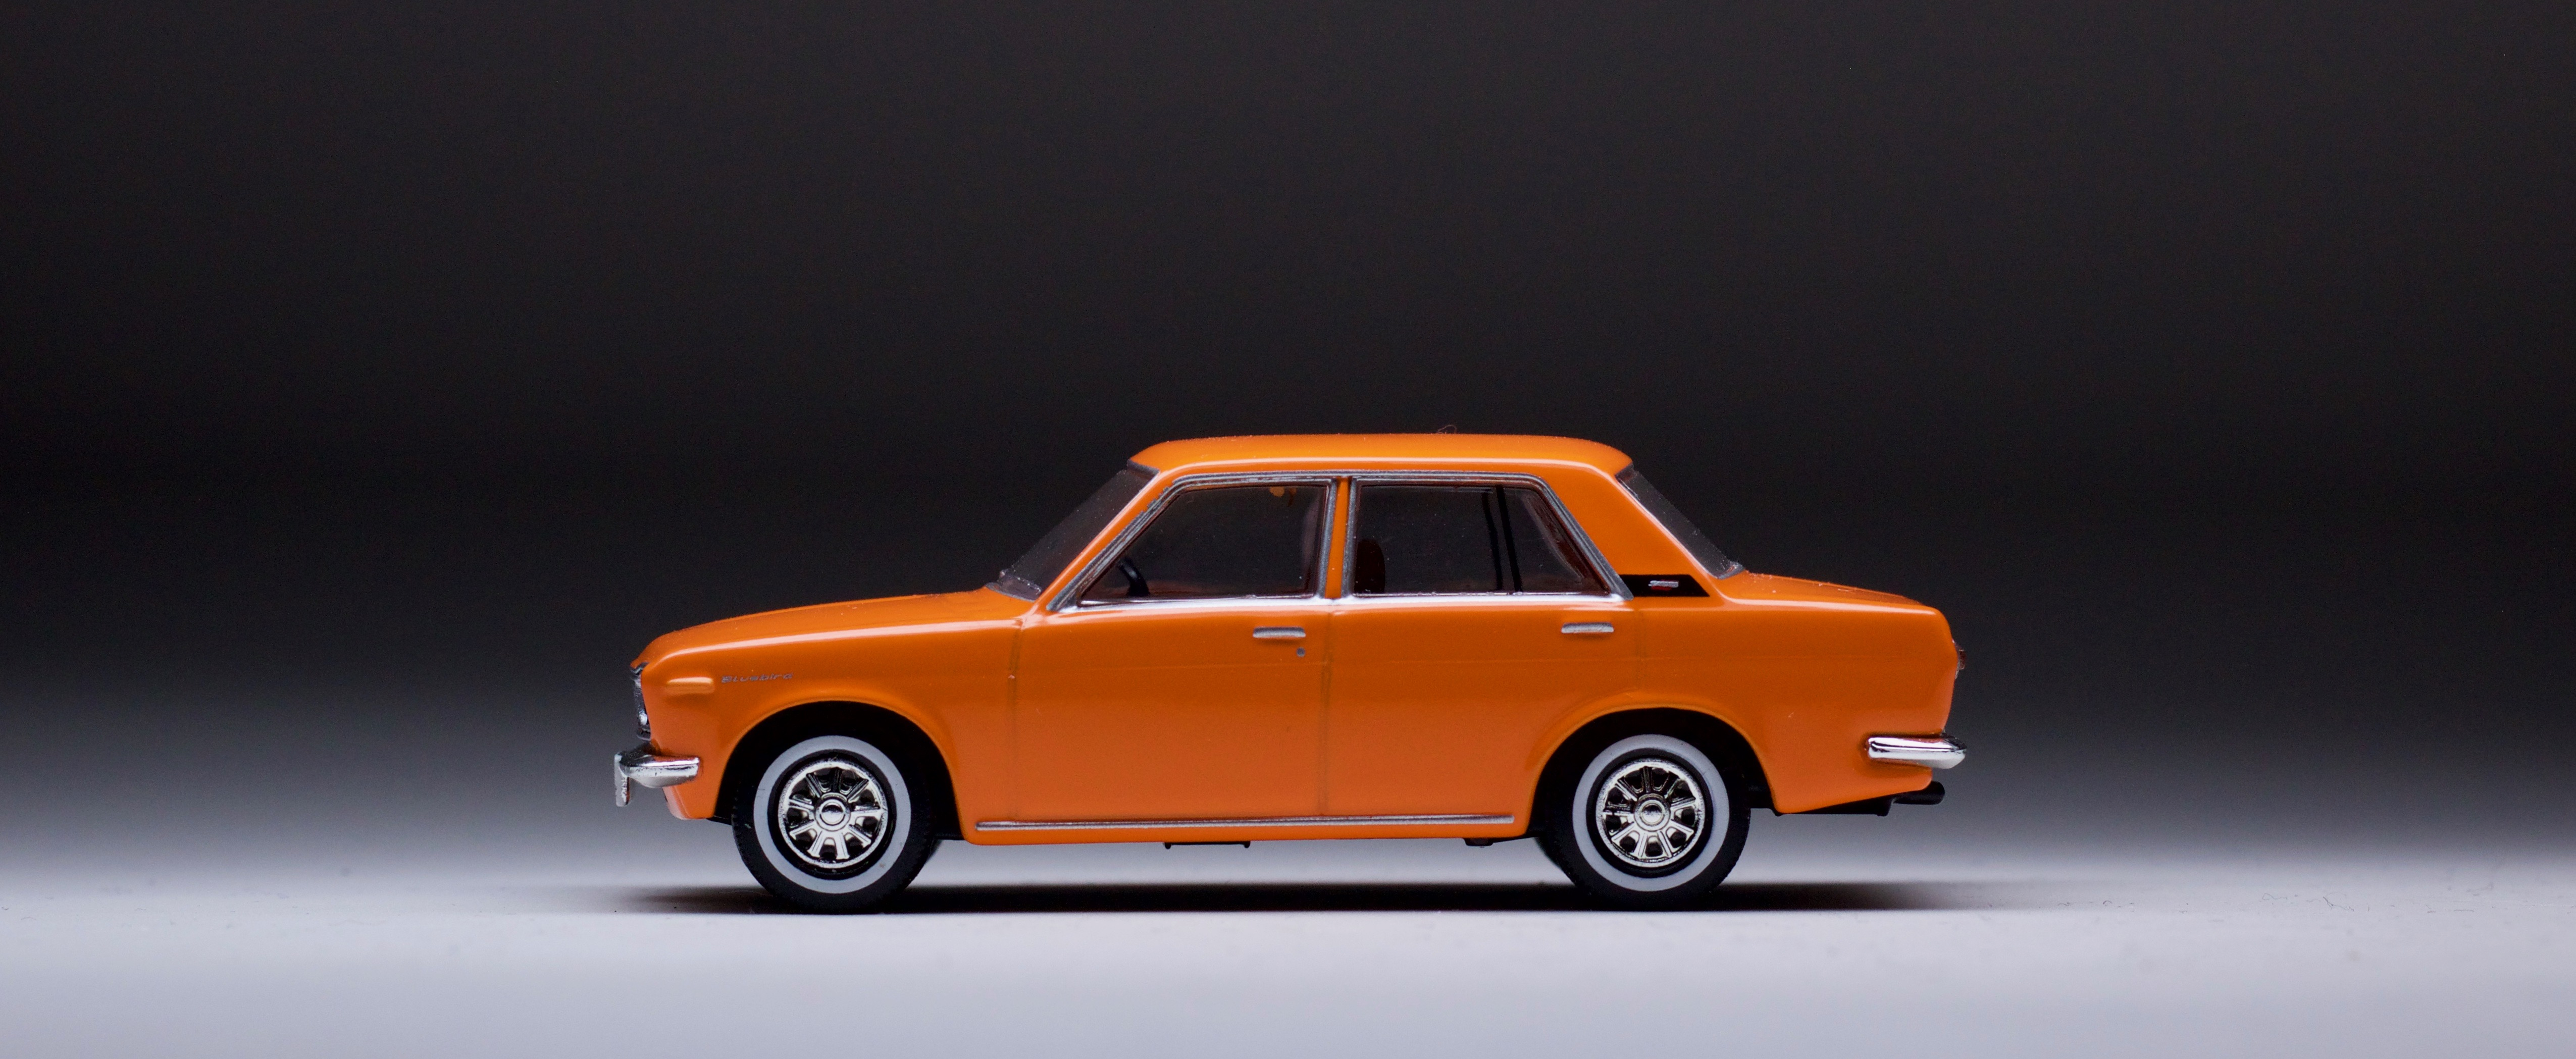 Do you know your Japanese cars? Take the TLV Quiz ...